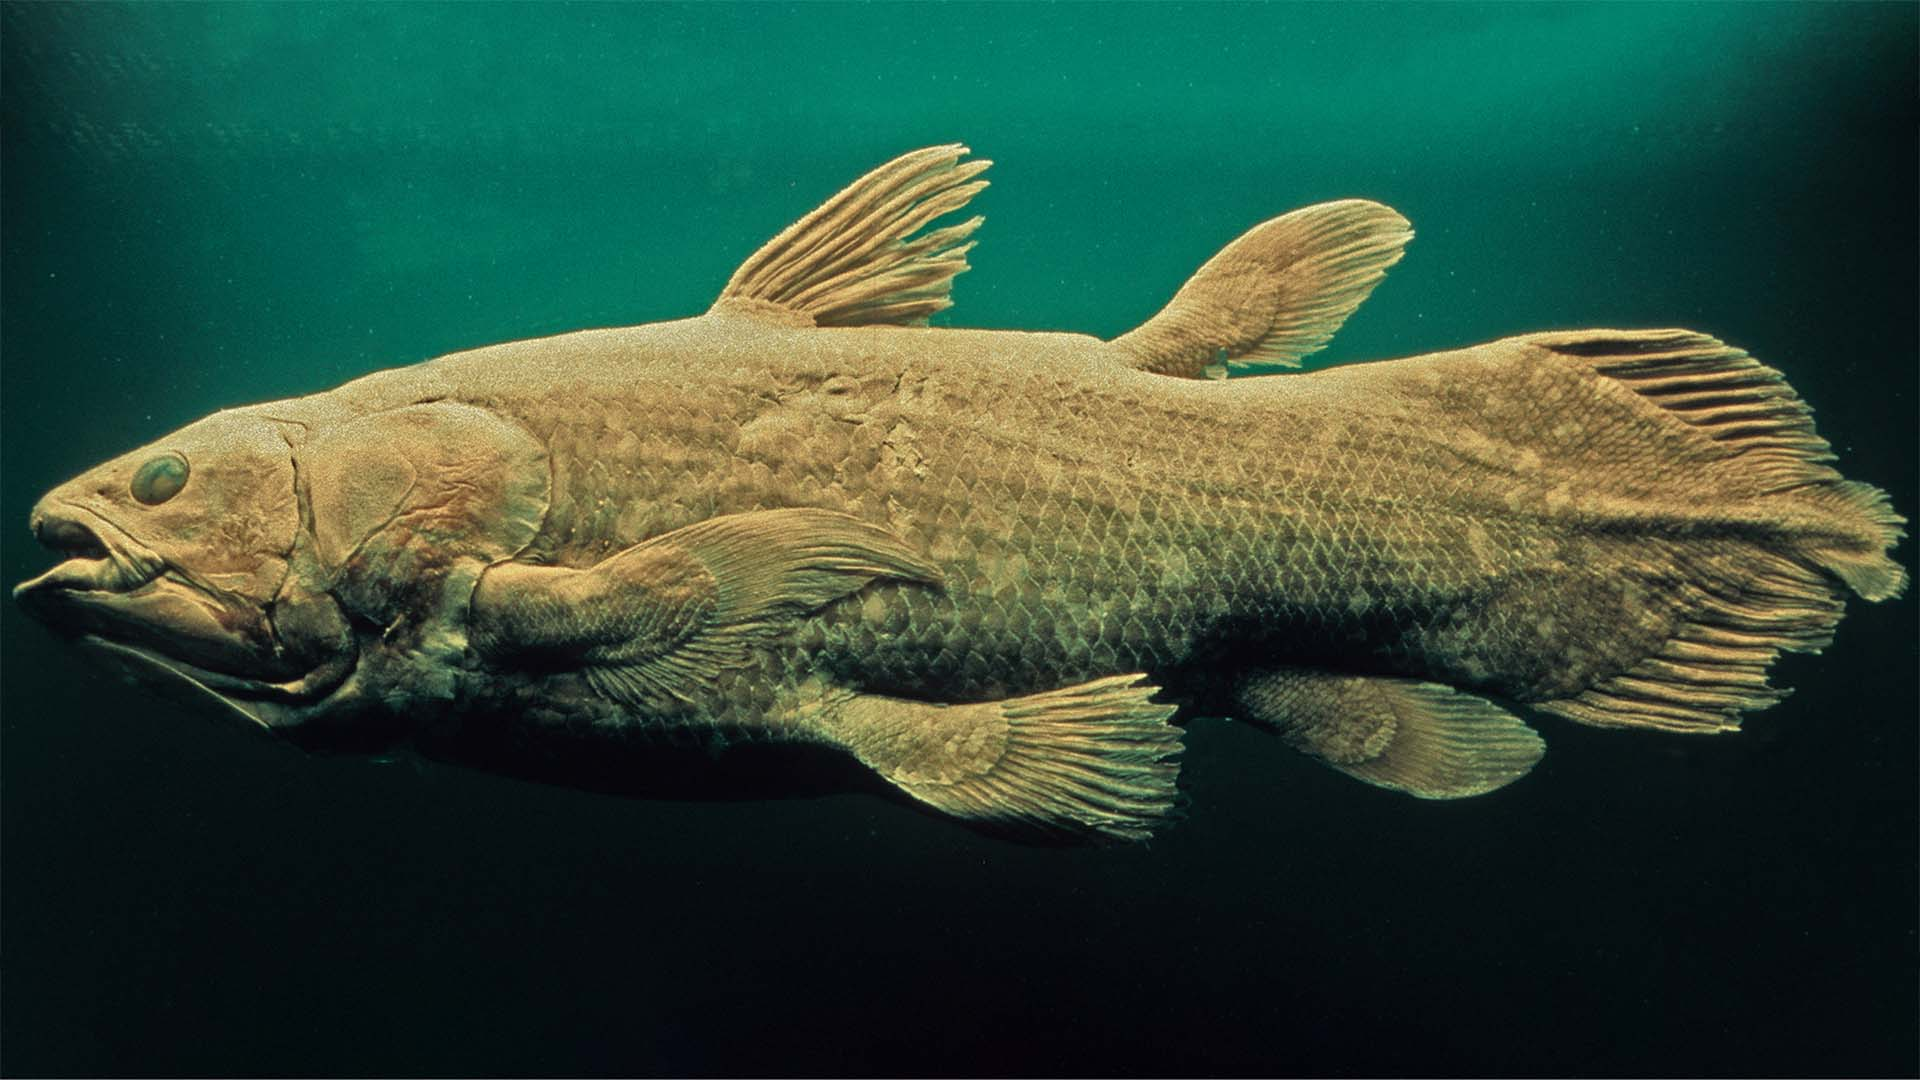 Thanks to their limb-like fins, coelacanths are actually more closely related to reptiles, amphibians, and mammals than they are to fish. (© Getty Images)